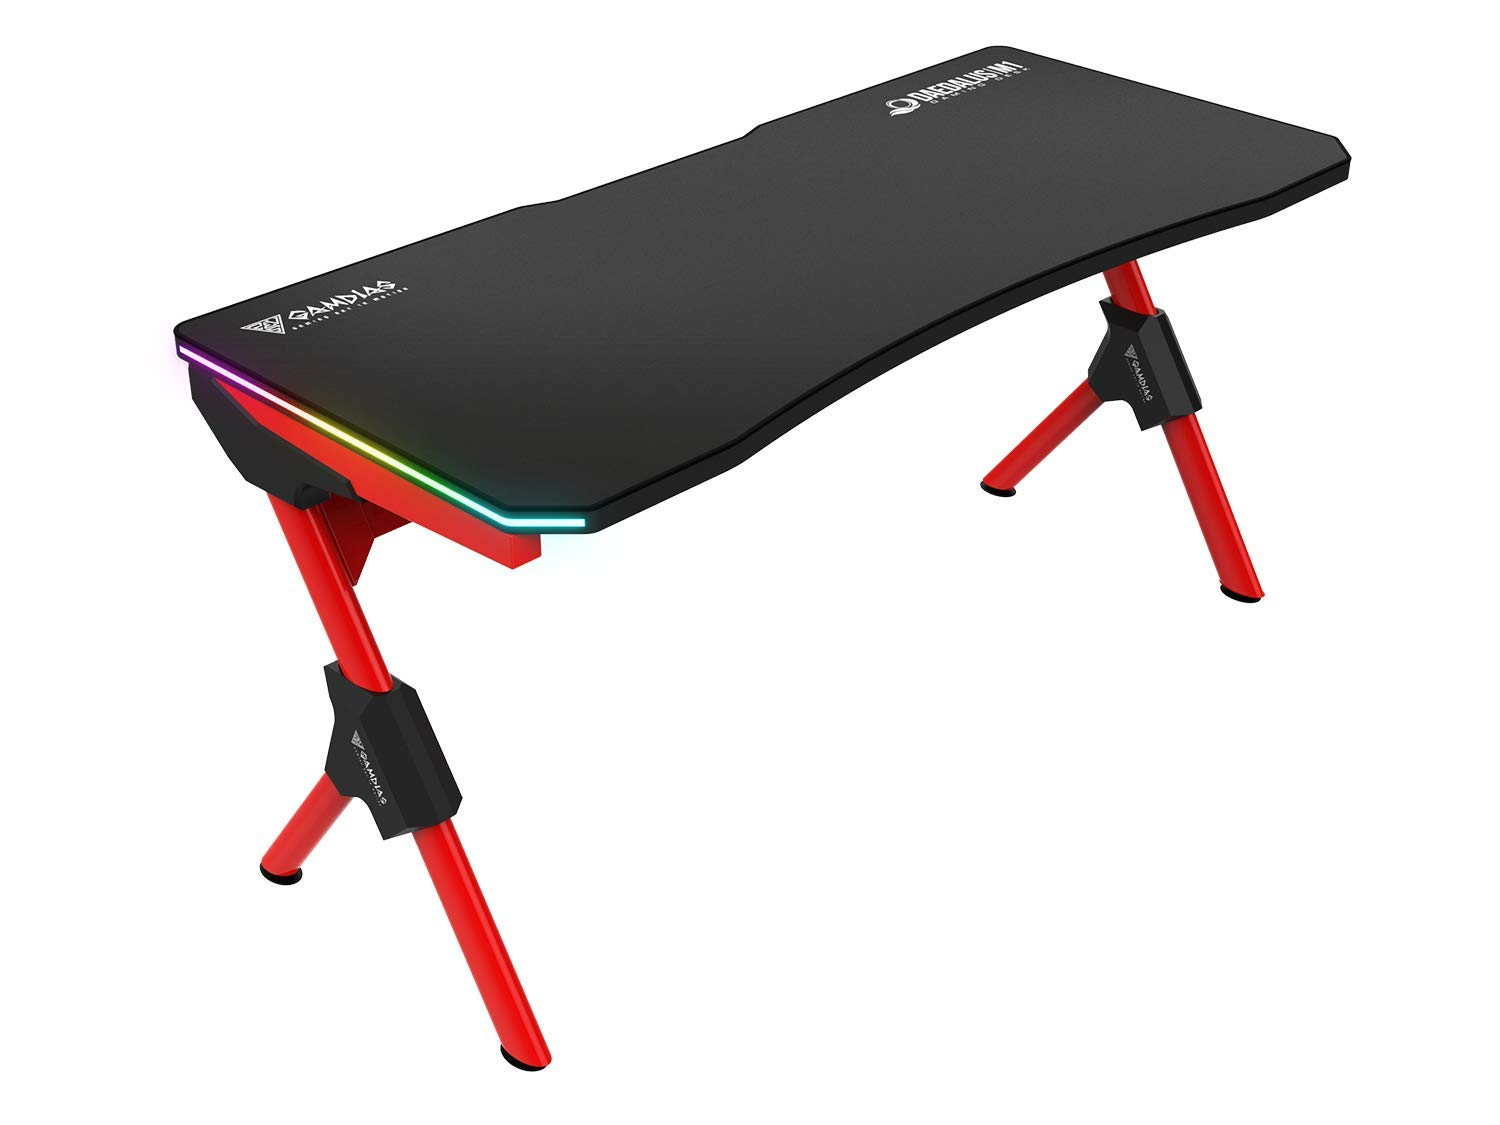 GAMDIAS Daedalus M1 RGB Gaming Desk, Computer Table with RGB Light Effect Daedalus M1